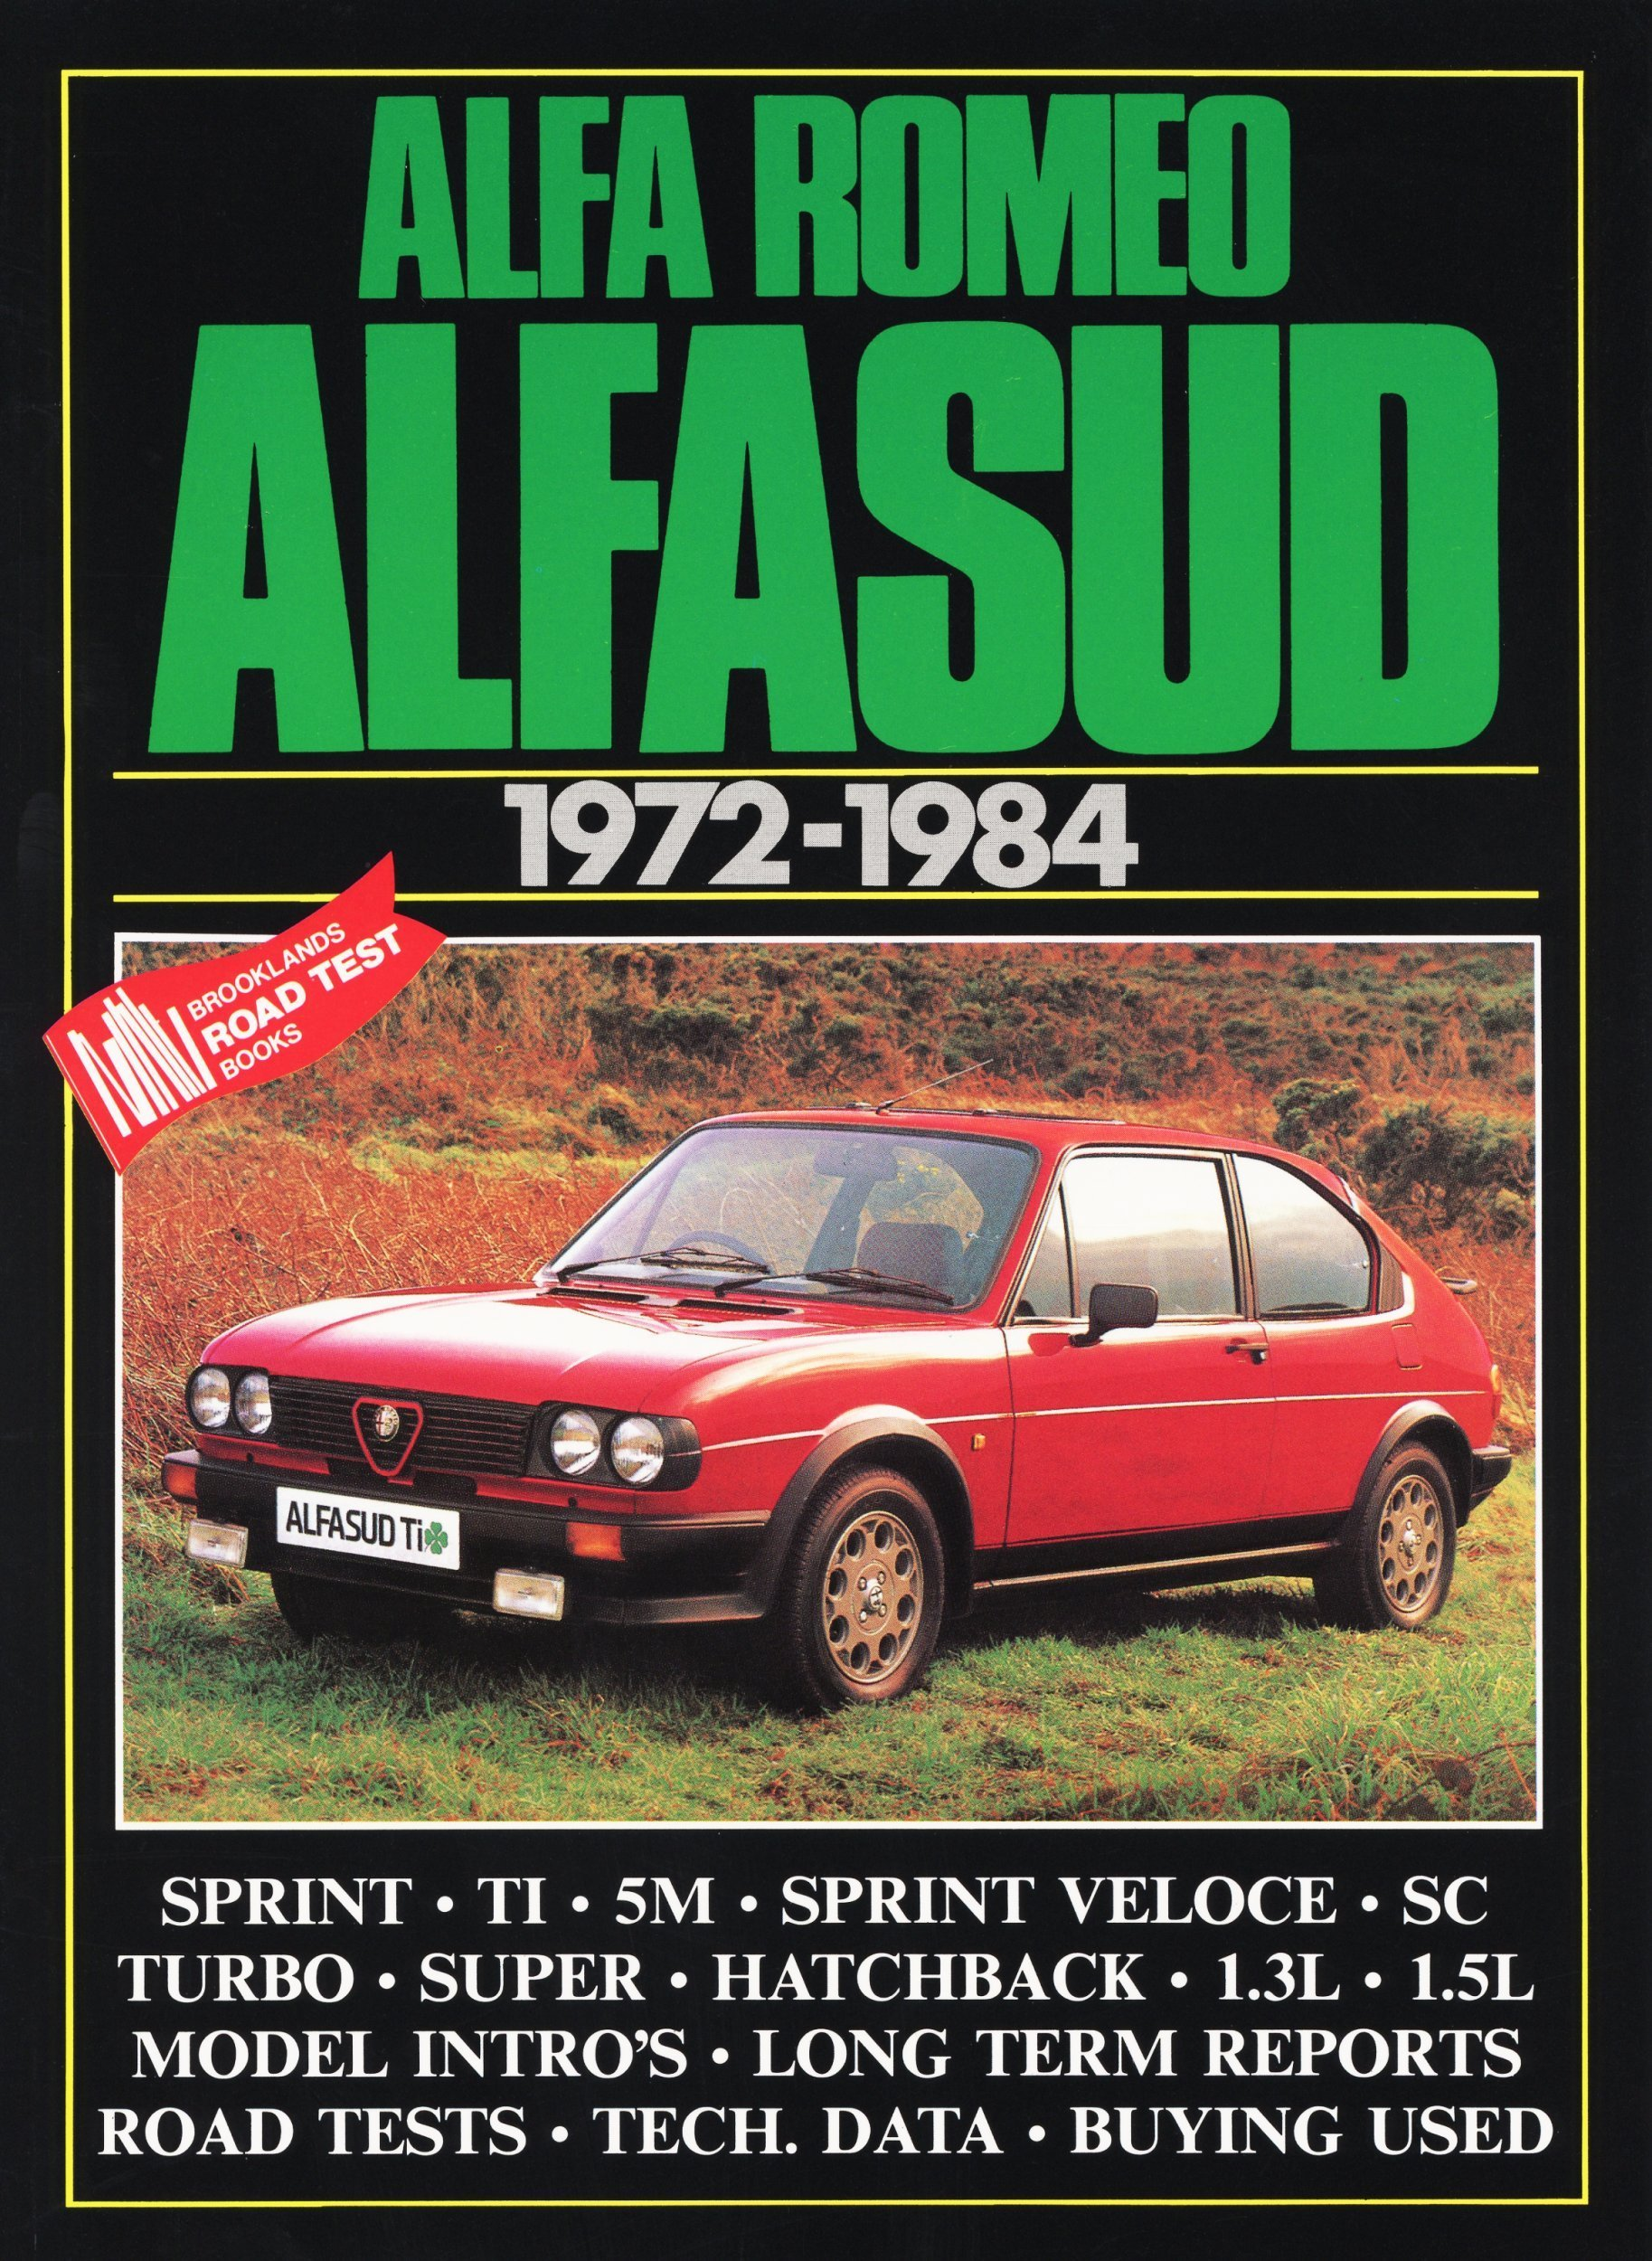 Alfa Romeo Alfasud, 1972-84: Road and Comparison Tests, Model Introductions, History and Buying Guide Articles. Models: 1186, Ti, 1286 Sprint, 5M, .